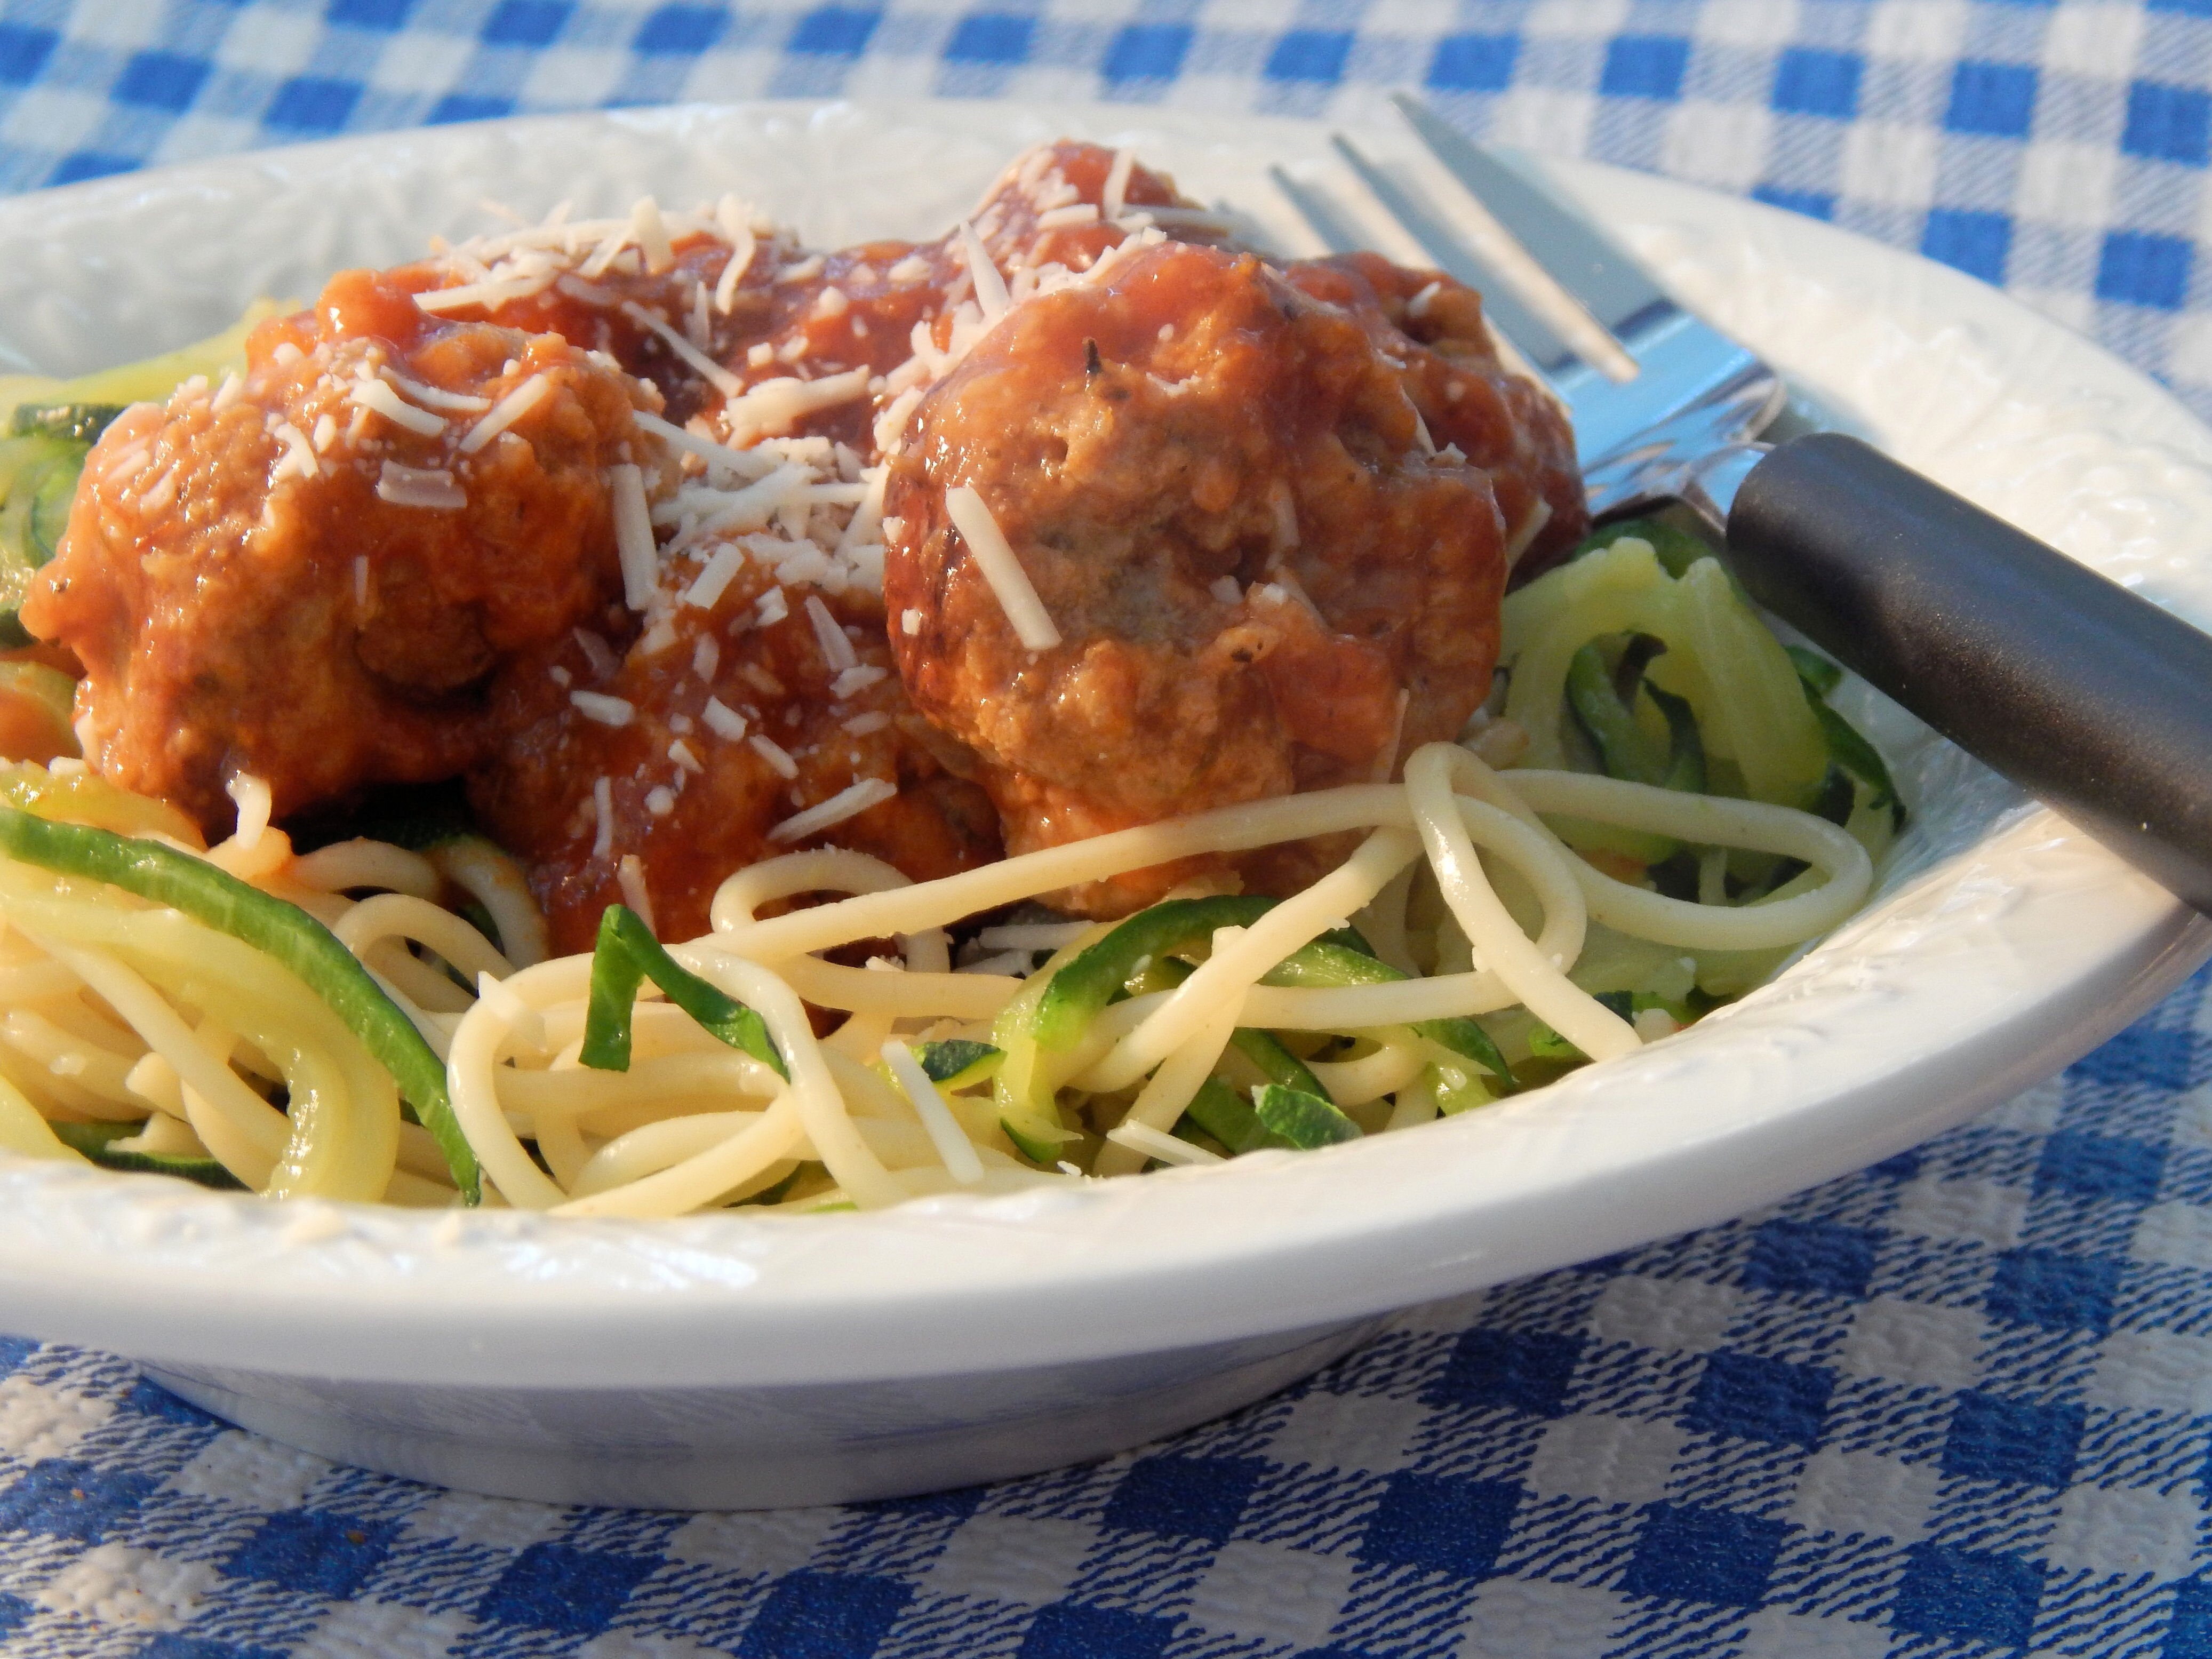 natashas out of this world instant pot meatballs recipe